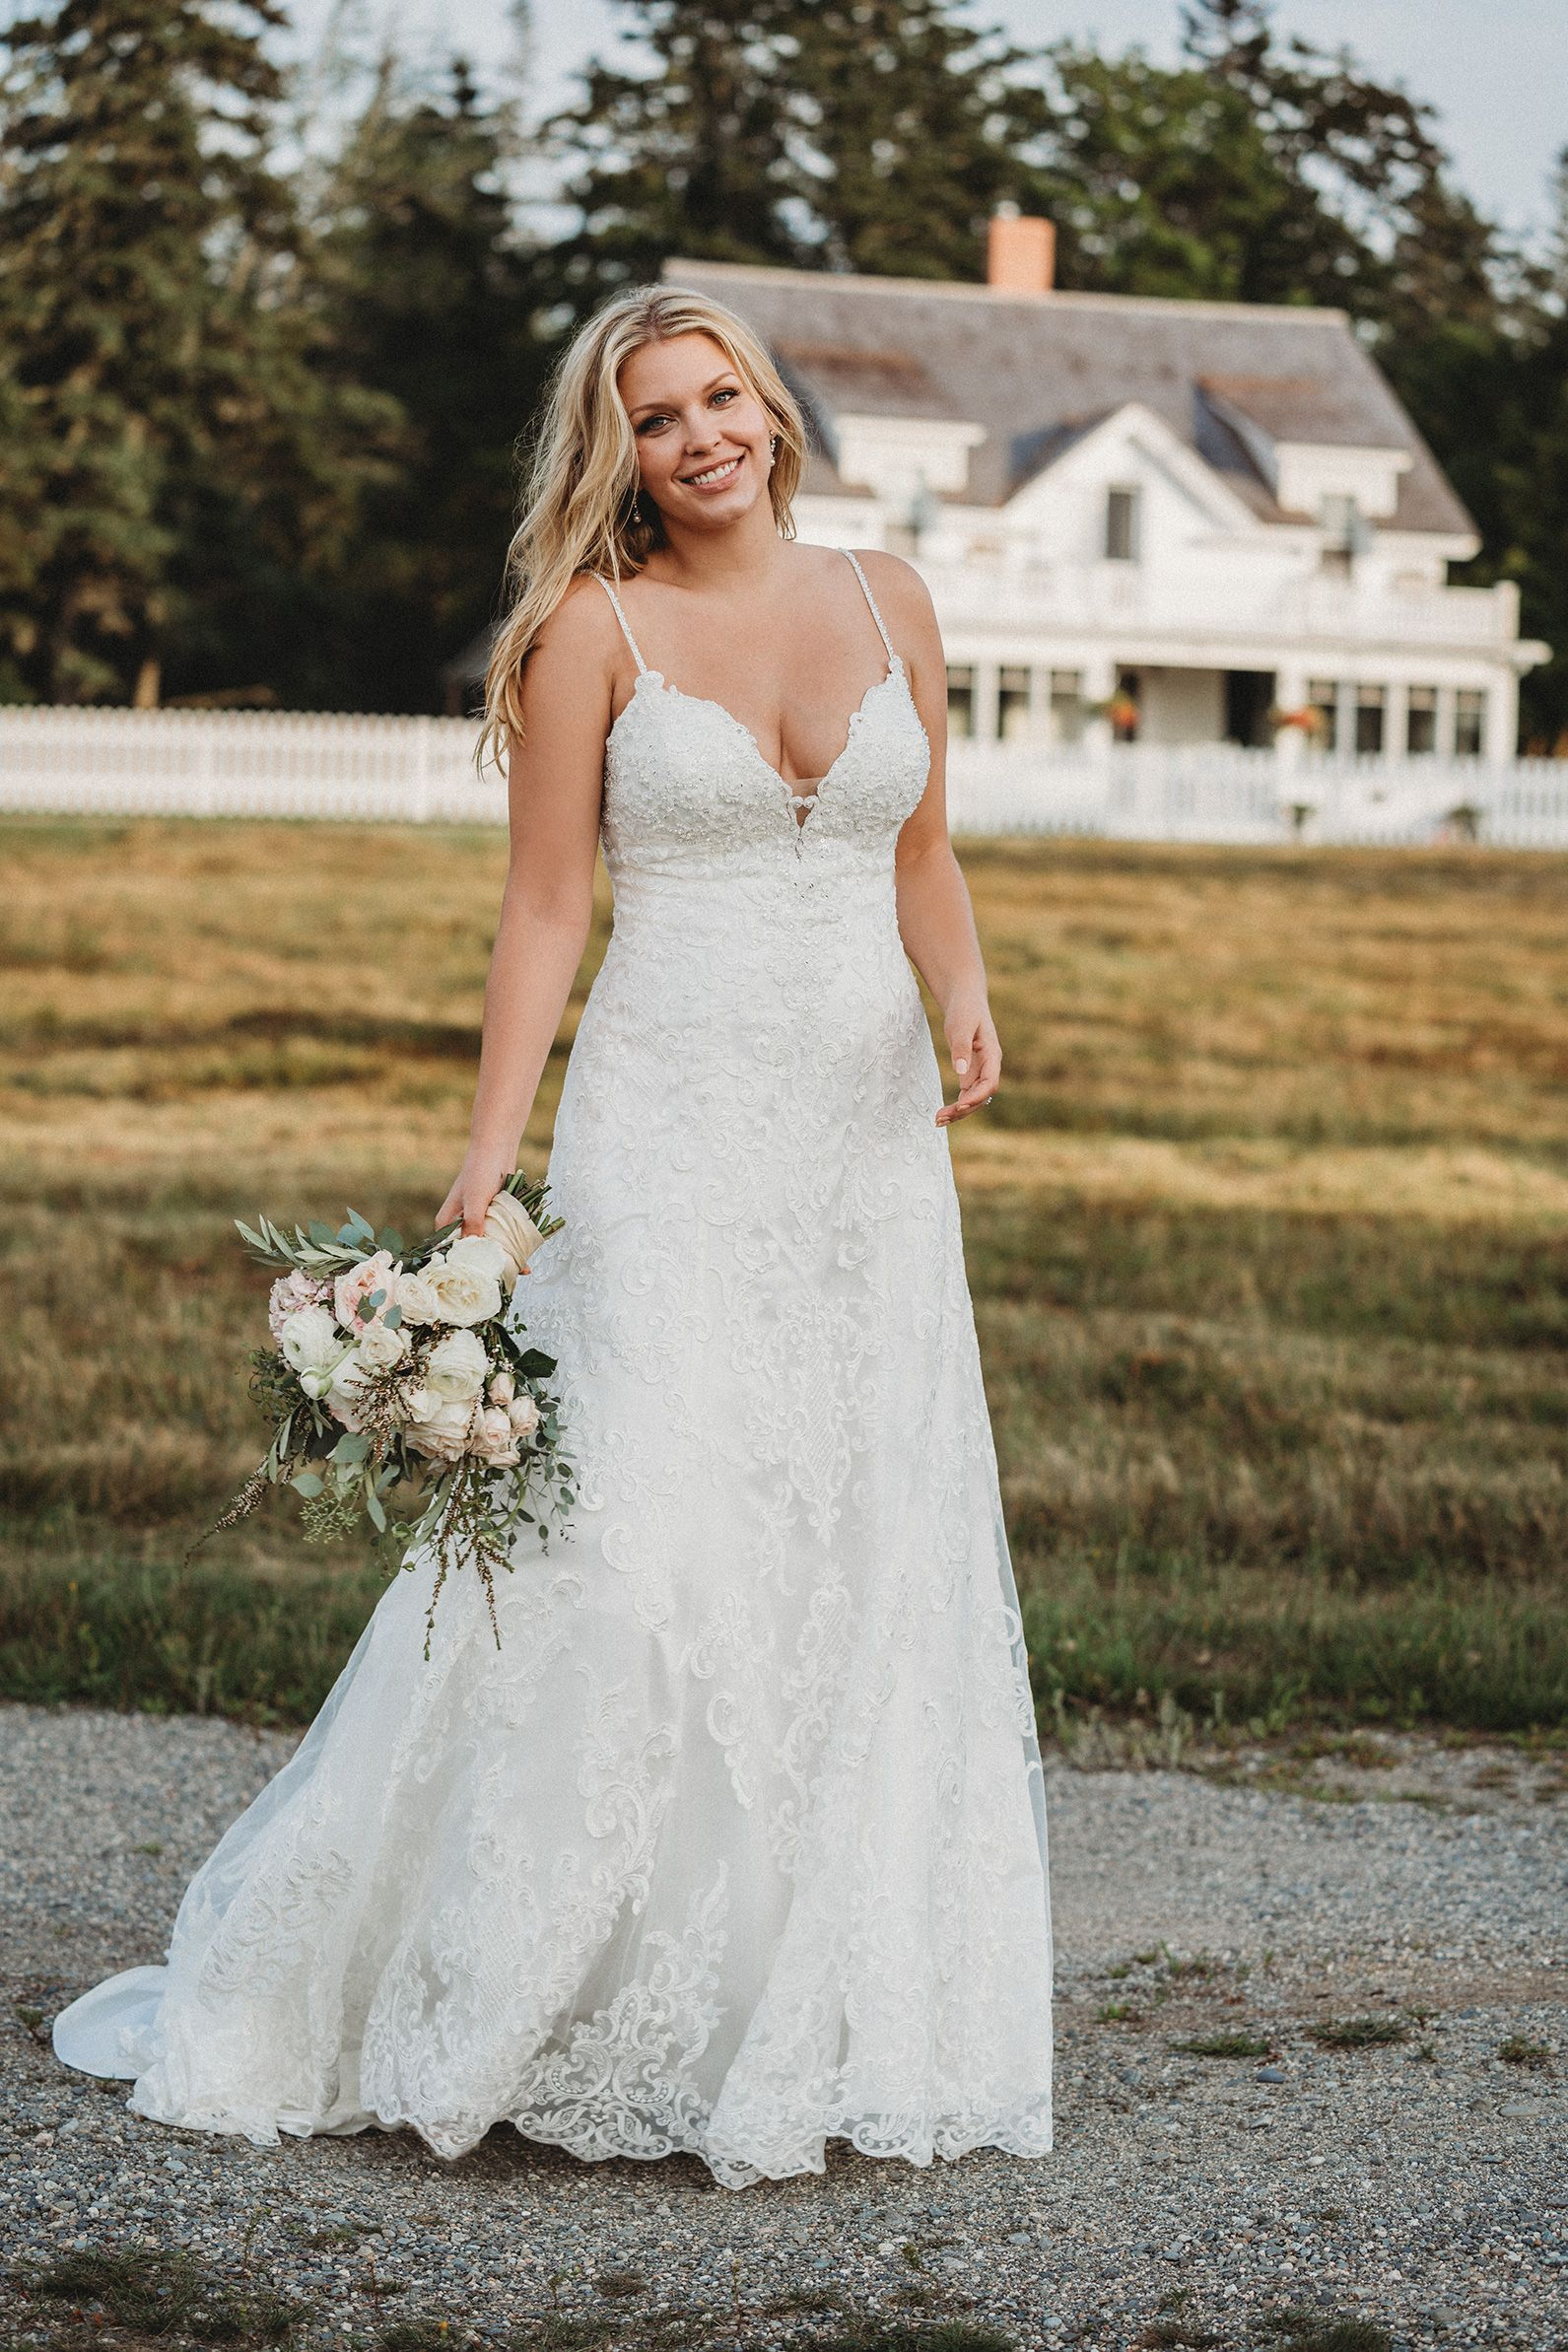 Plus Size Wedding Dress Sample Size 18 Inventory 2664 Dress Available At Bride To Be Cou Allure Bridal Allure Bridal Wedding Allure Bridal Wedding Dress [ 2386 x 1591 Pixel ]